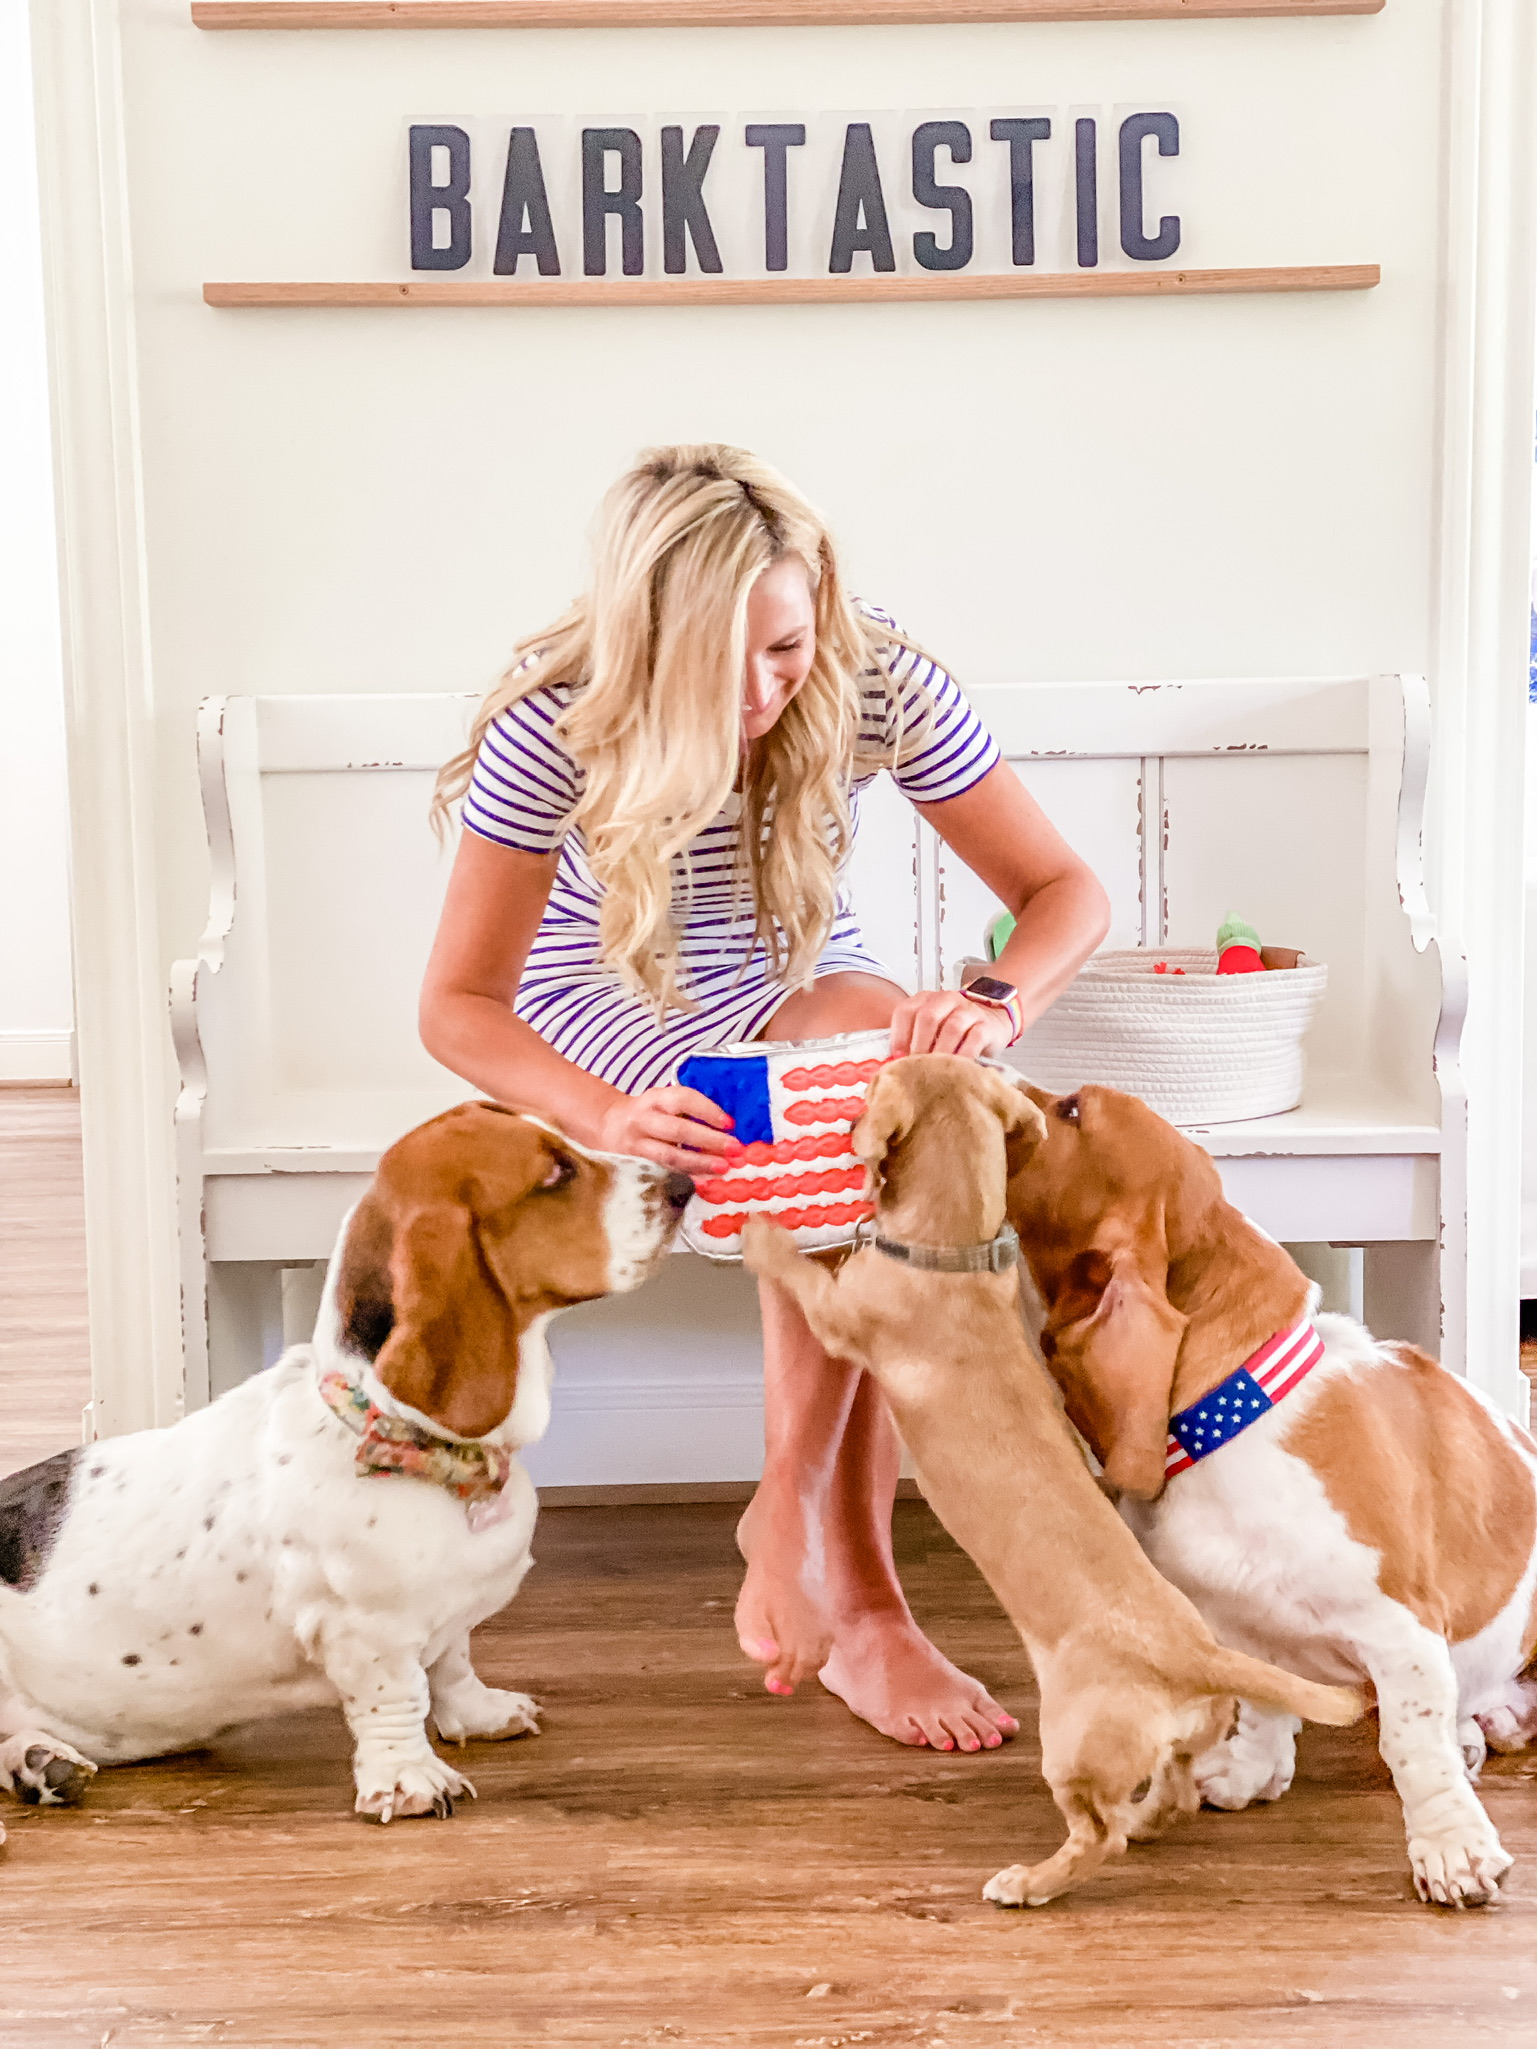 Target Dog Toys by popular Houston lifestyle blog, The House of Fancy: image of a woman wearing a blue and white stripe t-shirt dress and sitting on a white wooden bench next to her three dogs and white woven basket filled with dog toys.